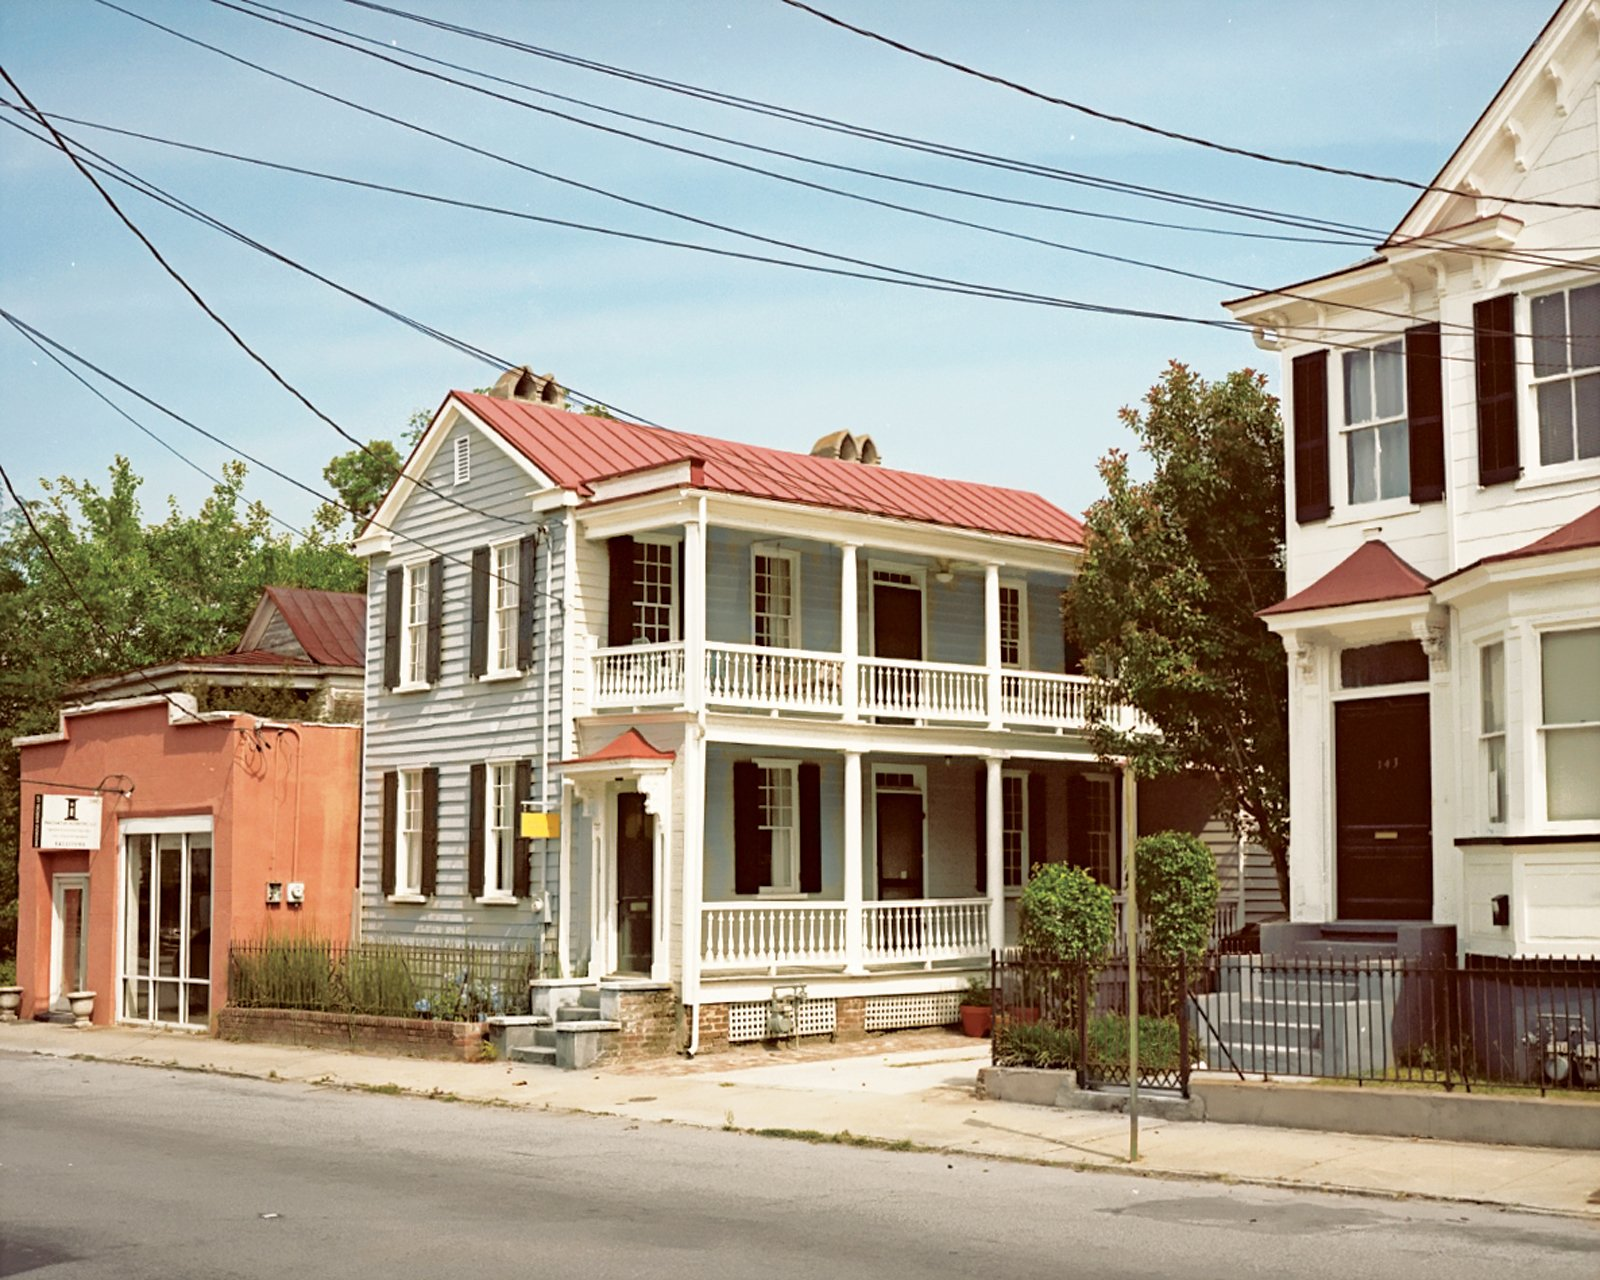 "The nineteenth-century structure is commonly known as a classic ""Charleston single""."